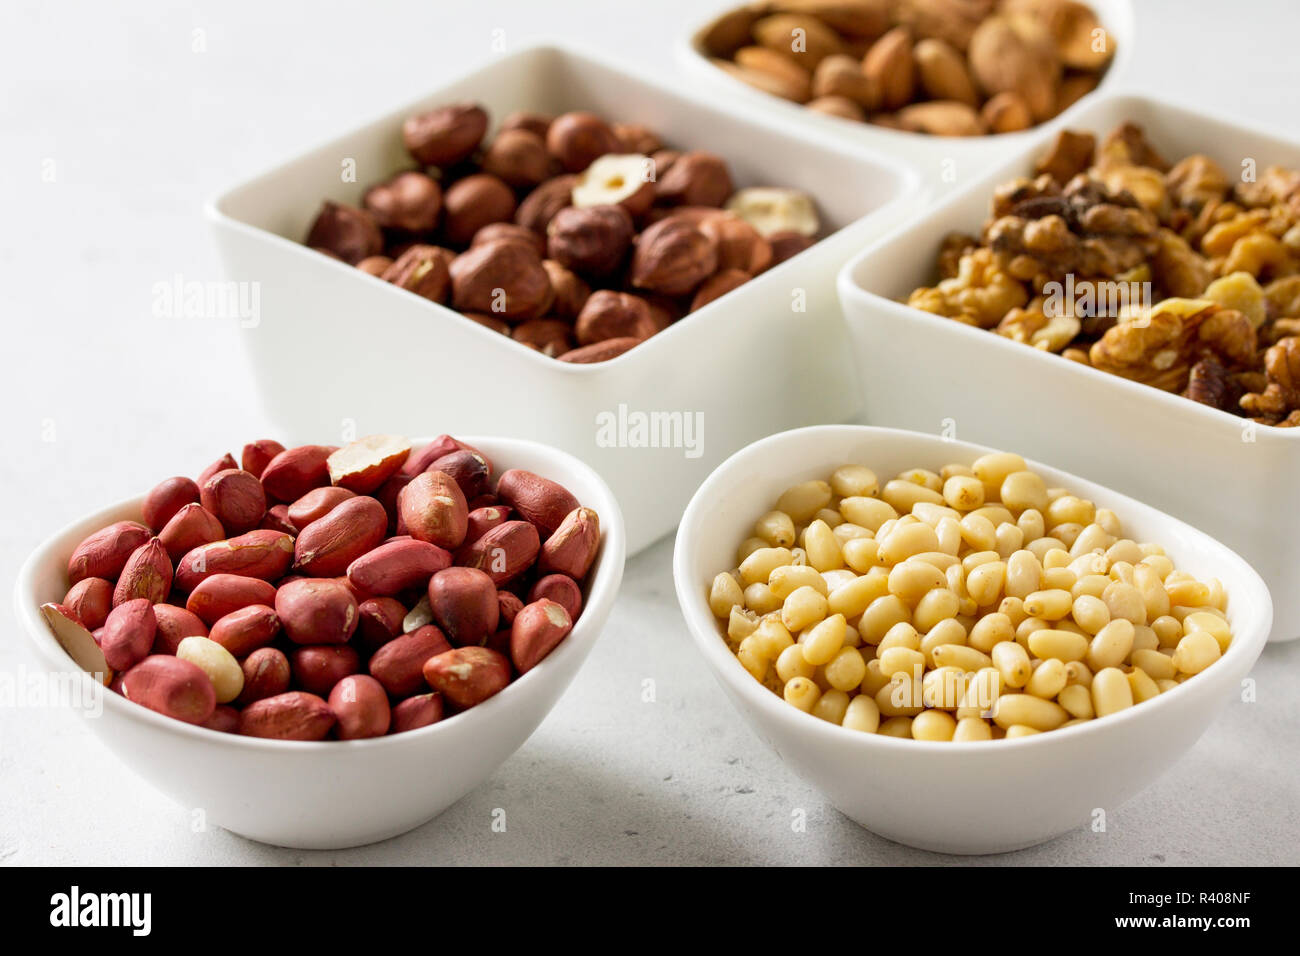 Various nuts in a ceramic bowl (walnut, almonds, pine nuts, hazelnuts) on a light stone table. The concept of a healthy dessert. - Stock Image